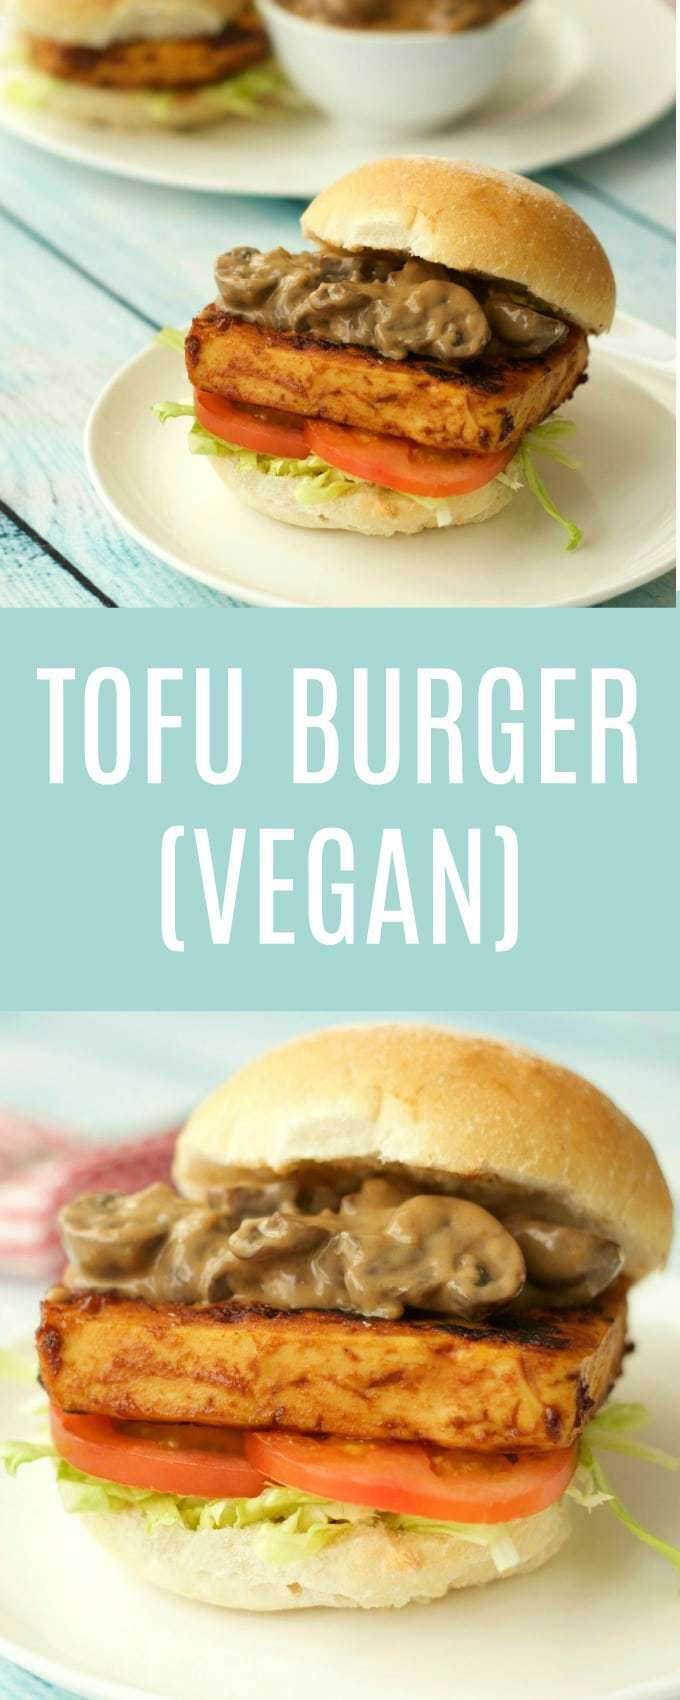 Delicious vegan tofu burger - baked and marinaded tofu topped with the richest creamiest mushroom sauce. Flavorful, savory and satisfying. | lovingitvegan.com